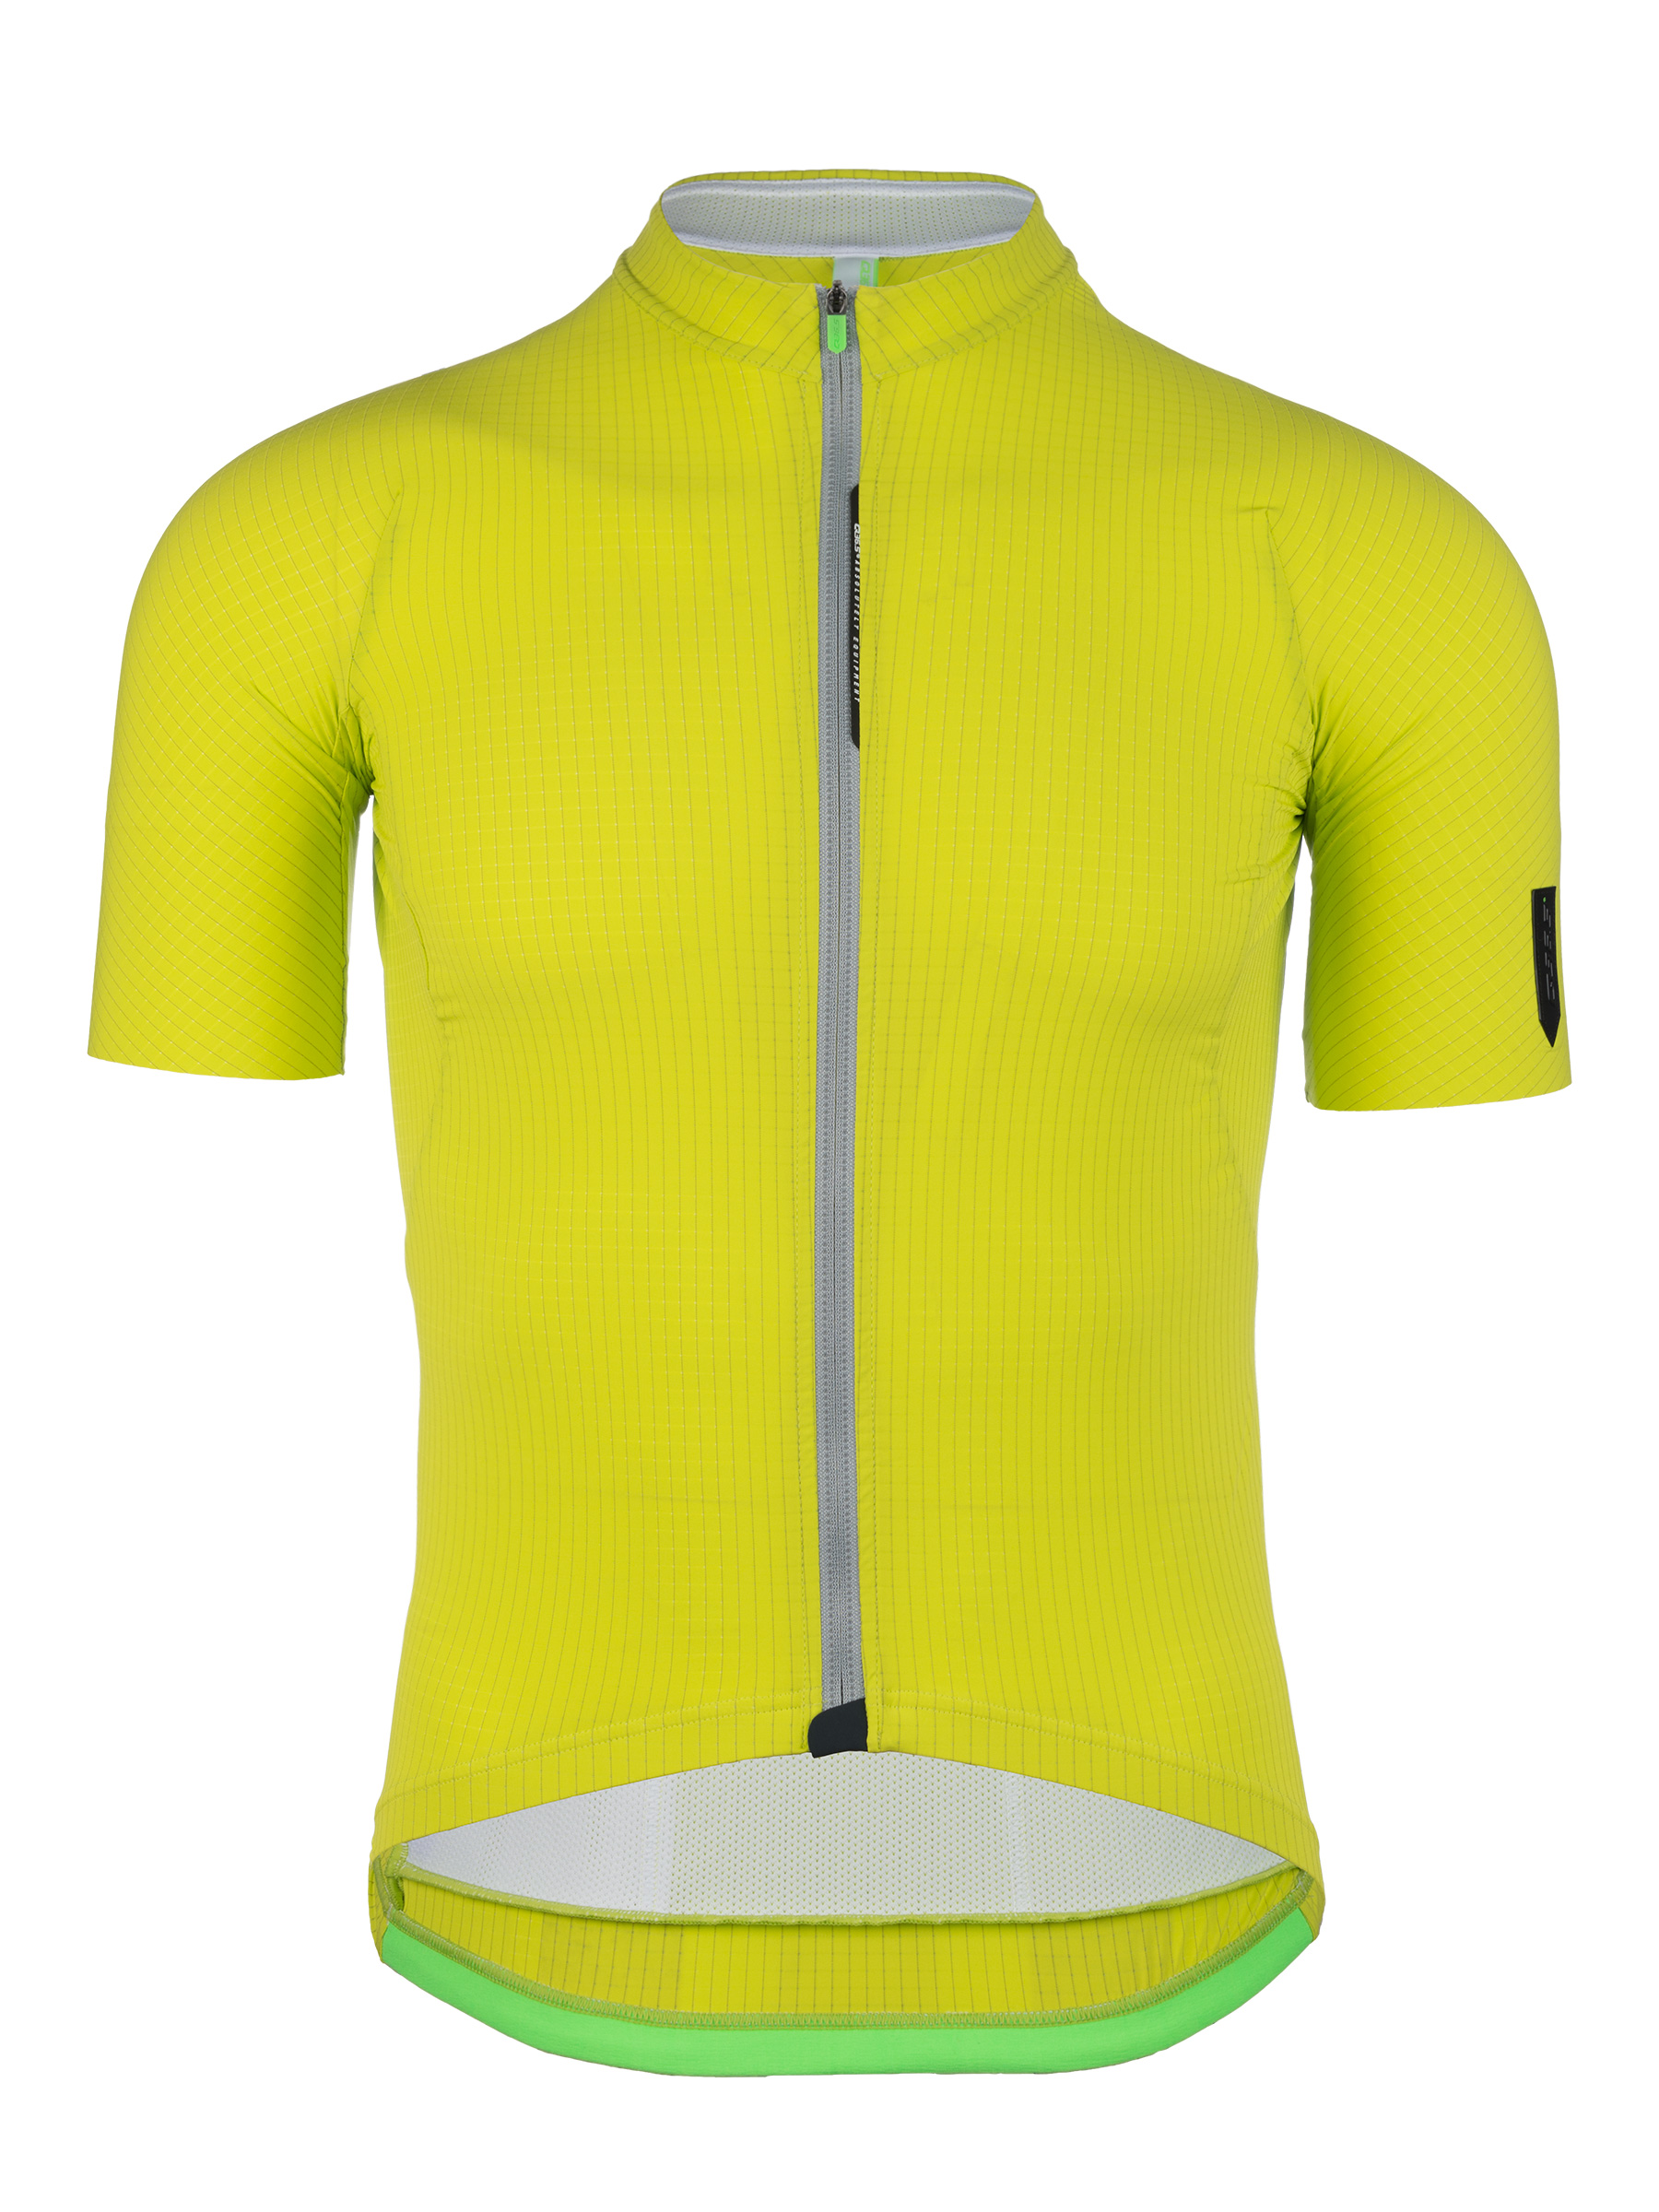 mens cycling jersey Pinstripe